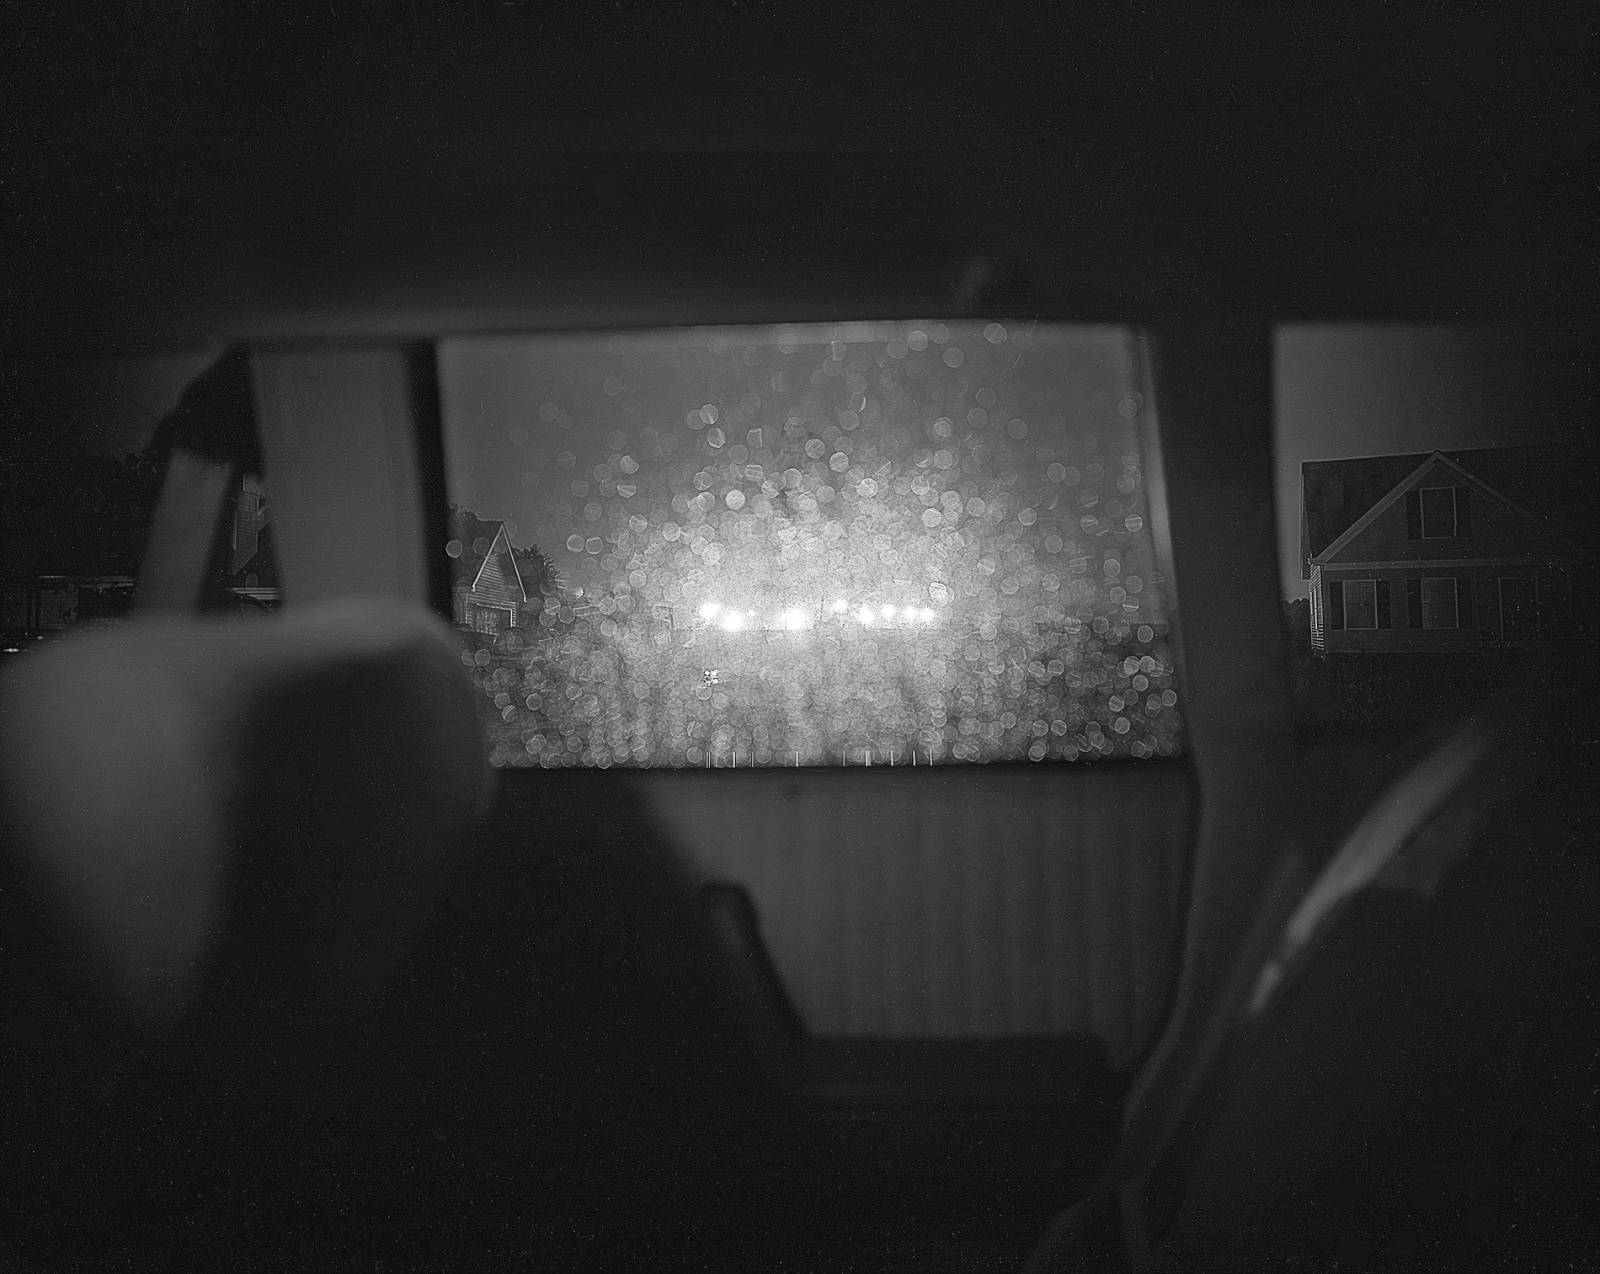 delaware_death_house_storm_in_car_v2_1999_copy_copy.jpg